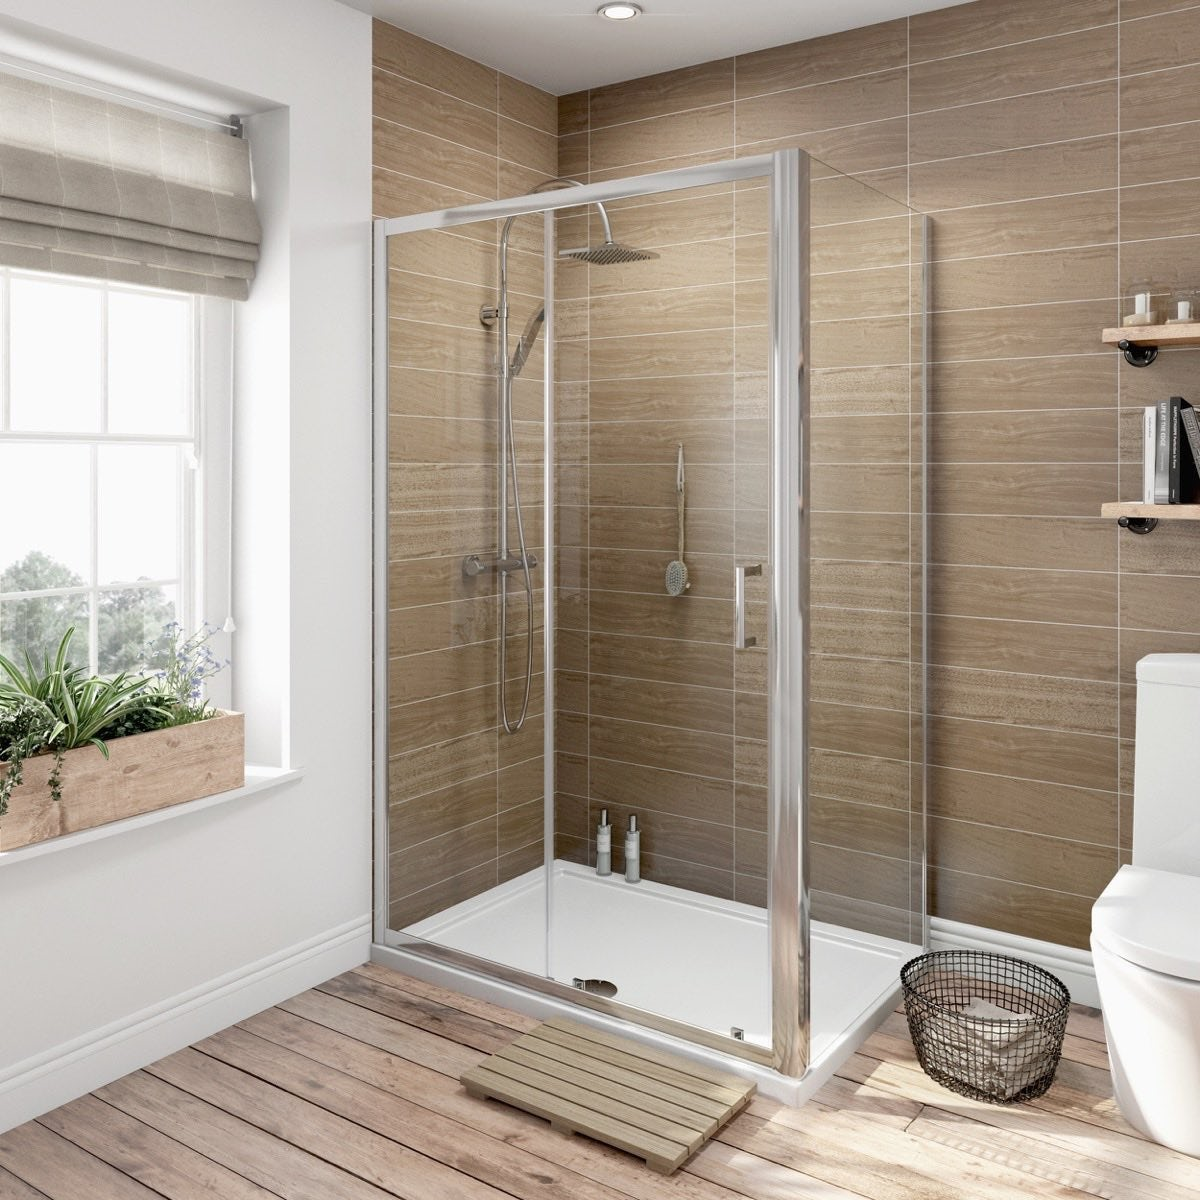 6mm sliding door rectangular shower enclosure